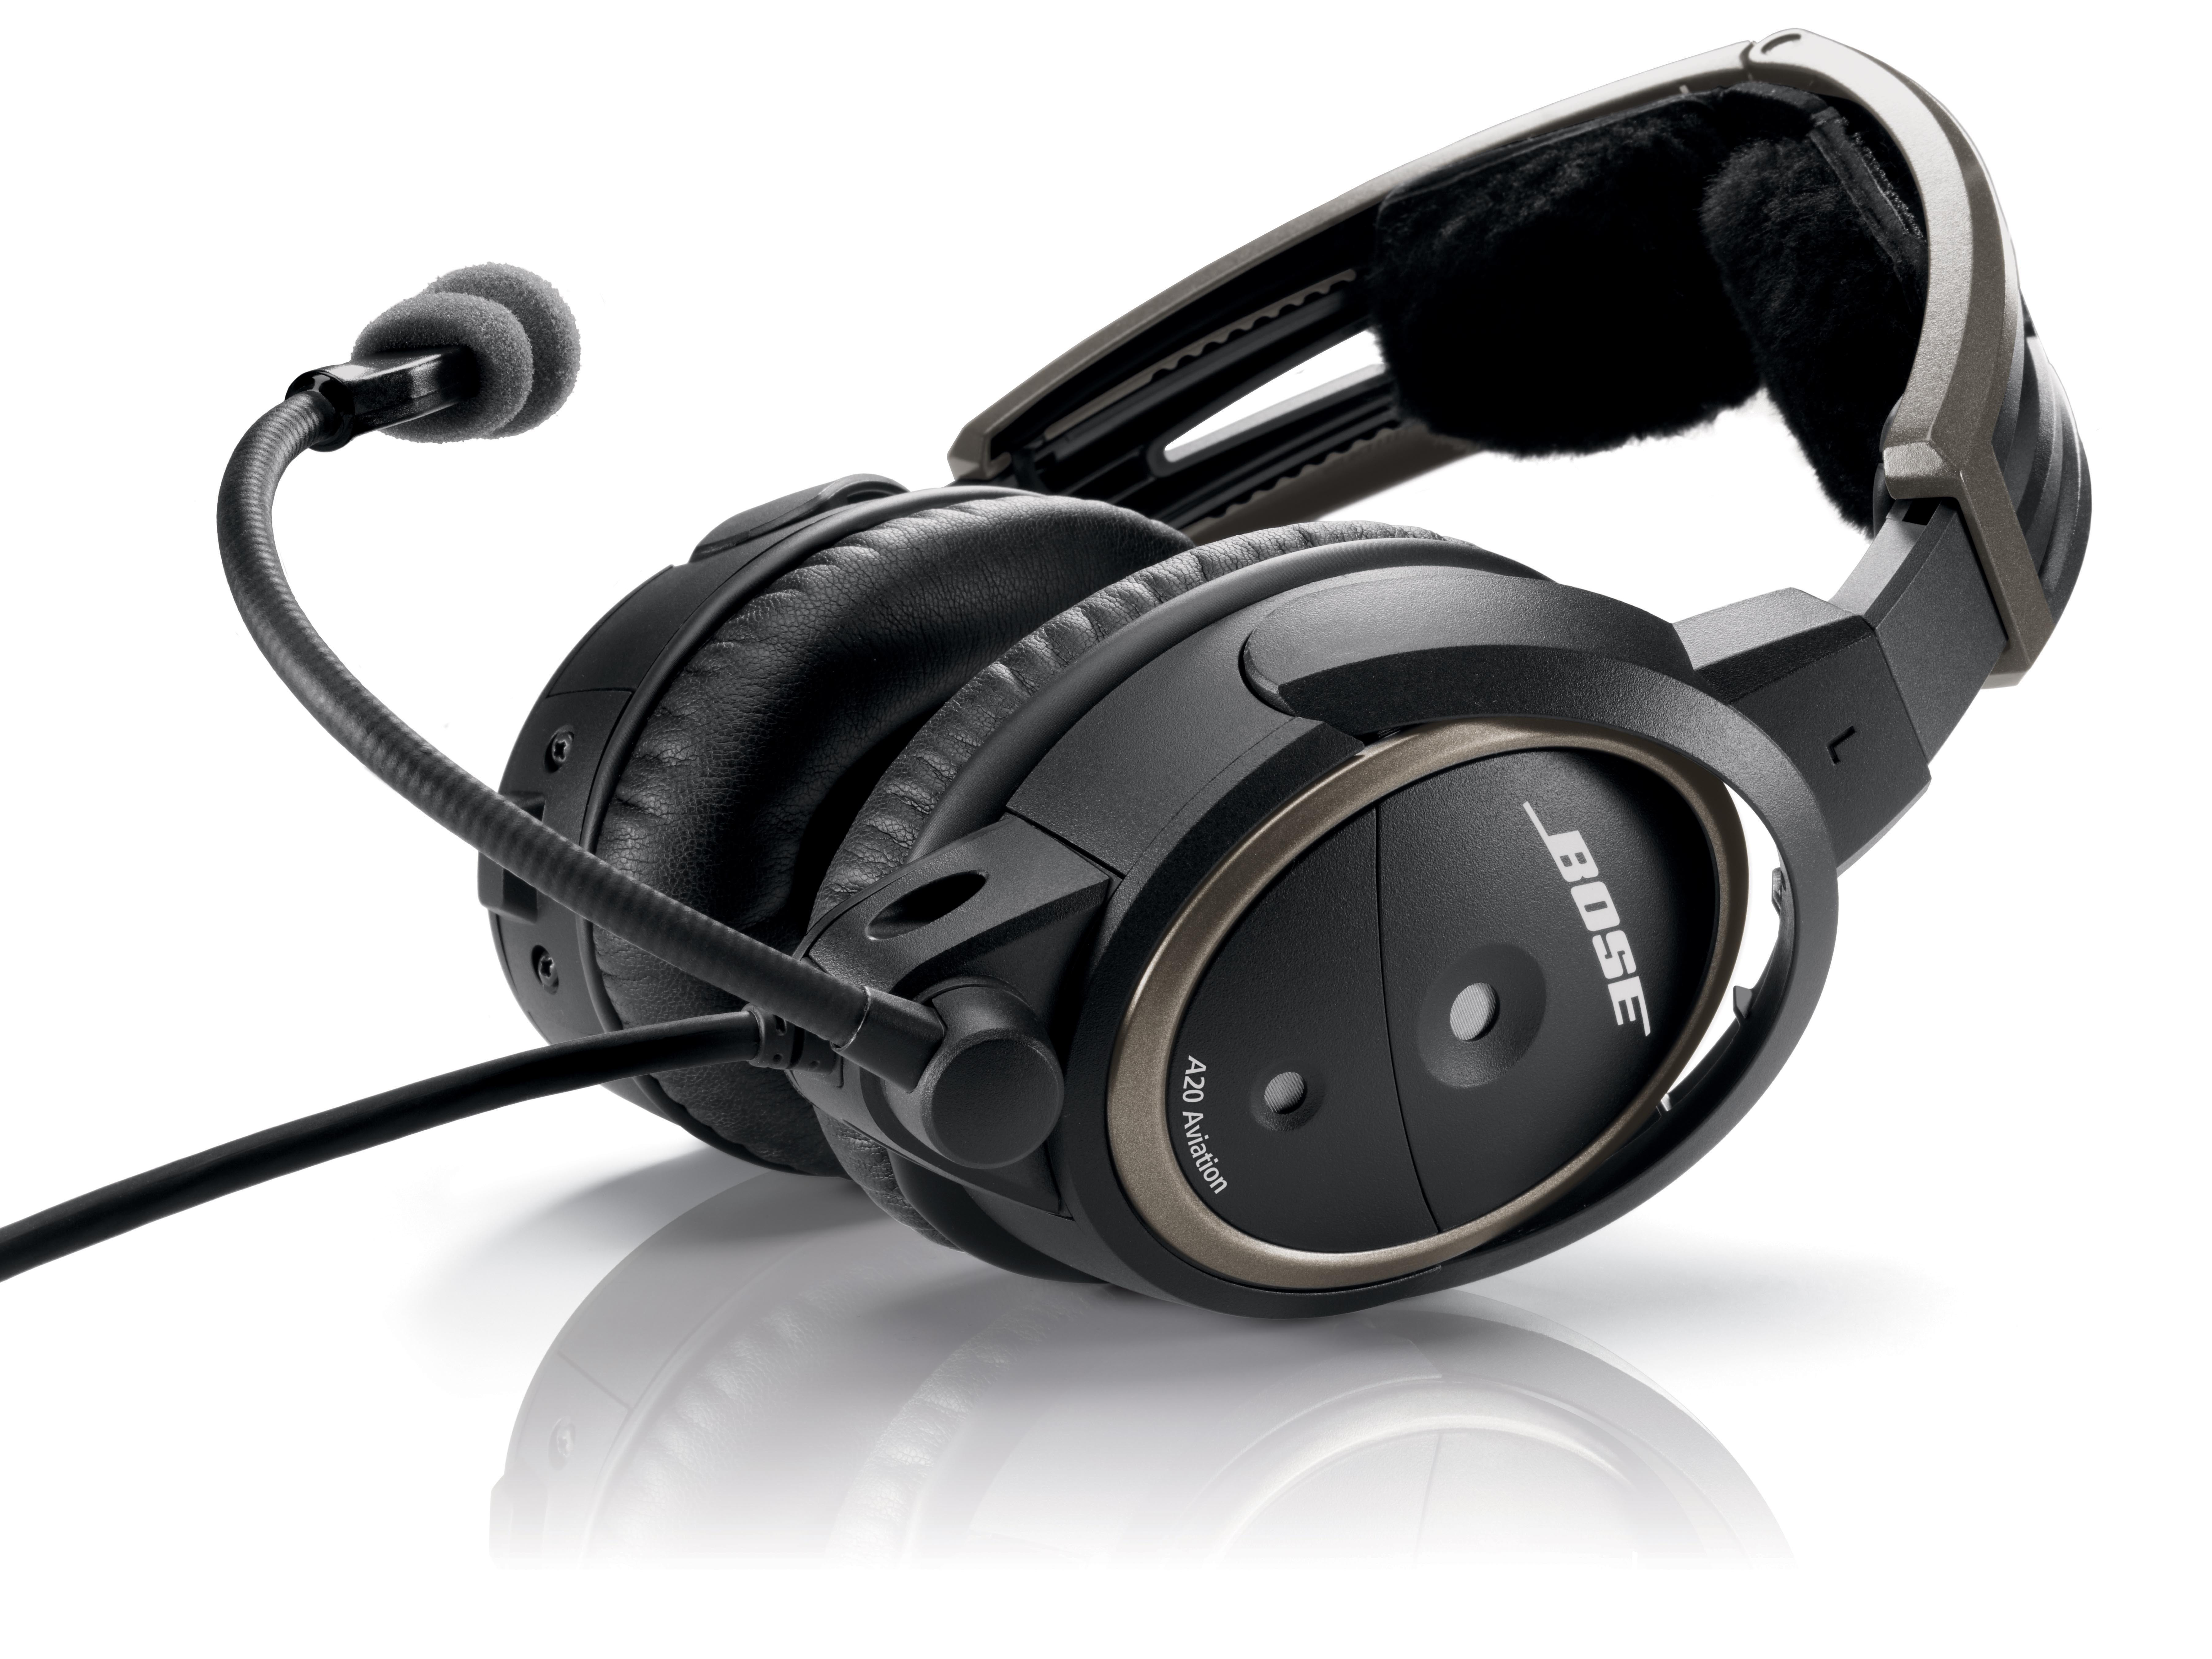 Bose A20 Avtive Noise reduction ANR helicopter Headset with Bluetooth